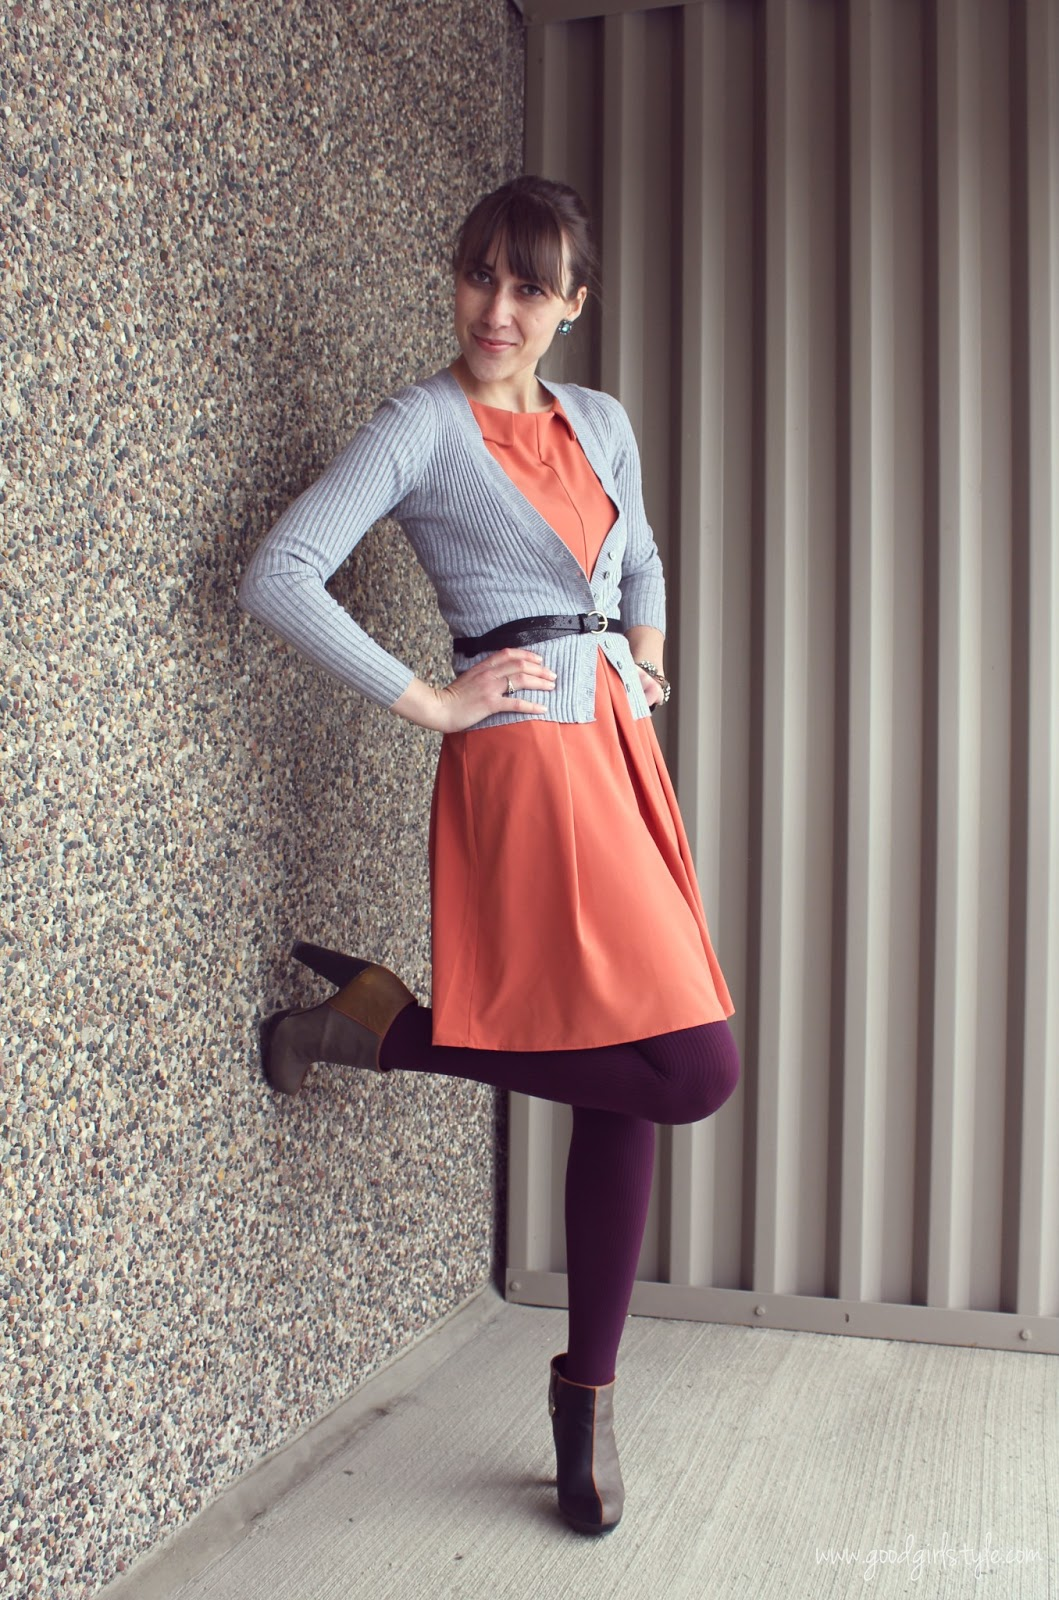 Good Girl Style Wearing Skirts Amp Tights In Winter